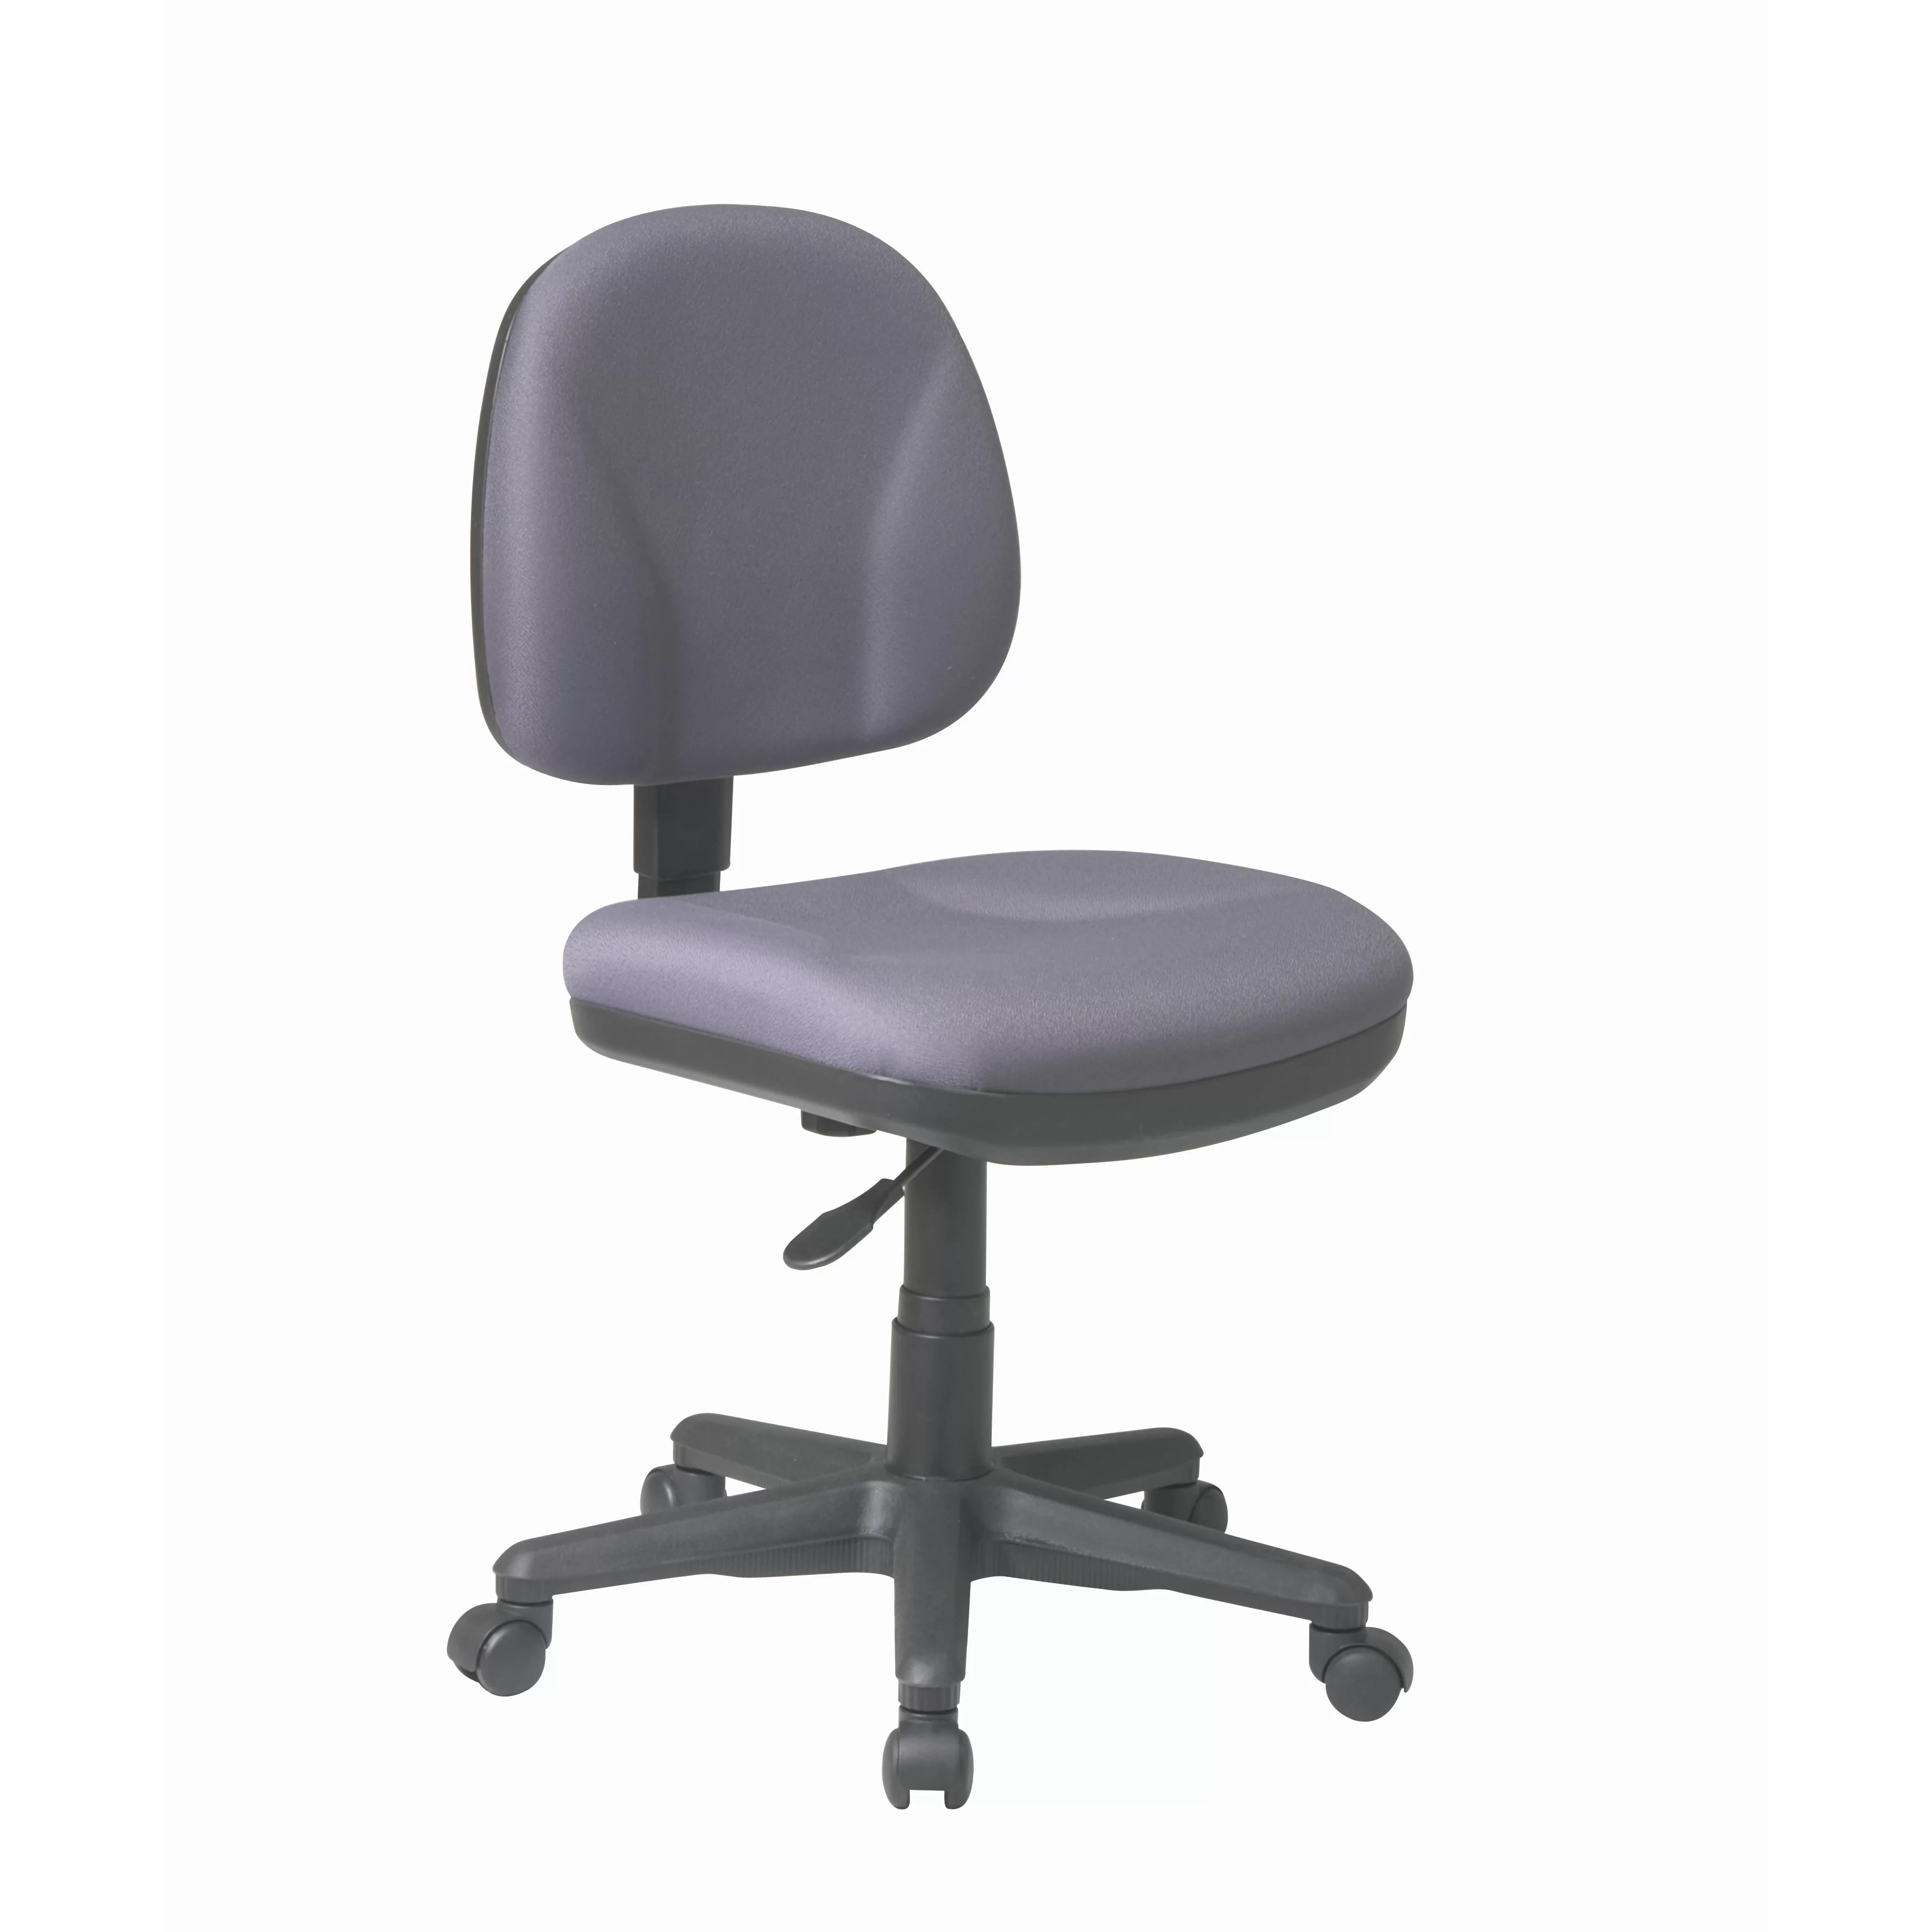 office chair without arms comfy kid chairs star sculptured low back task